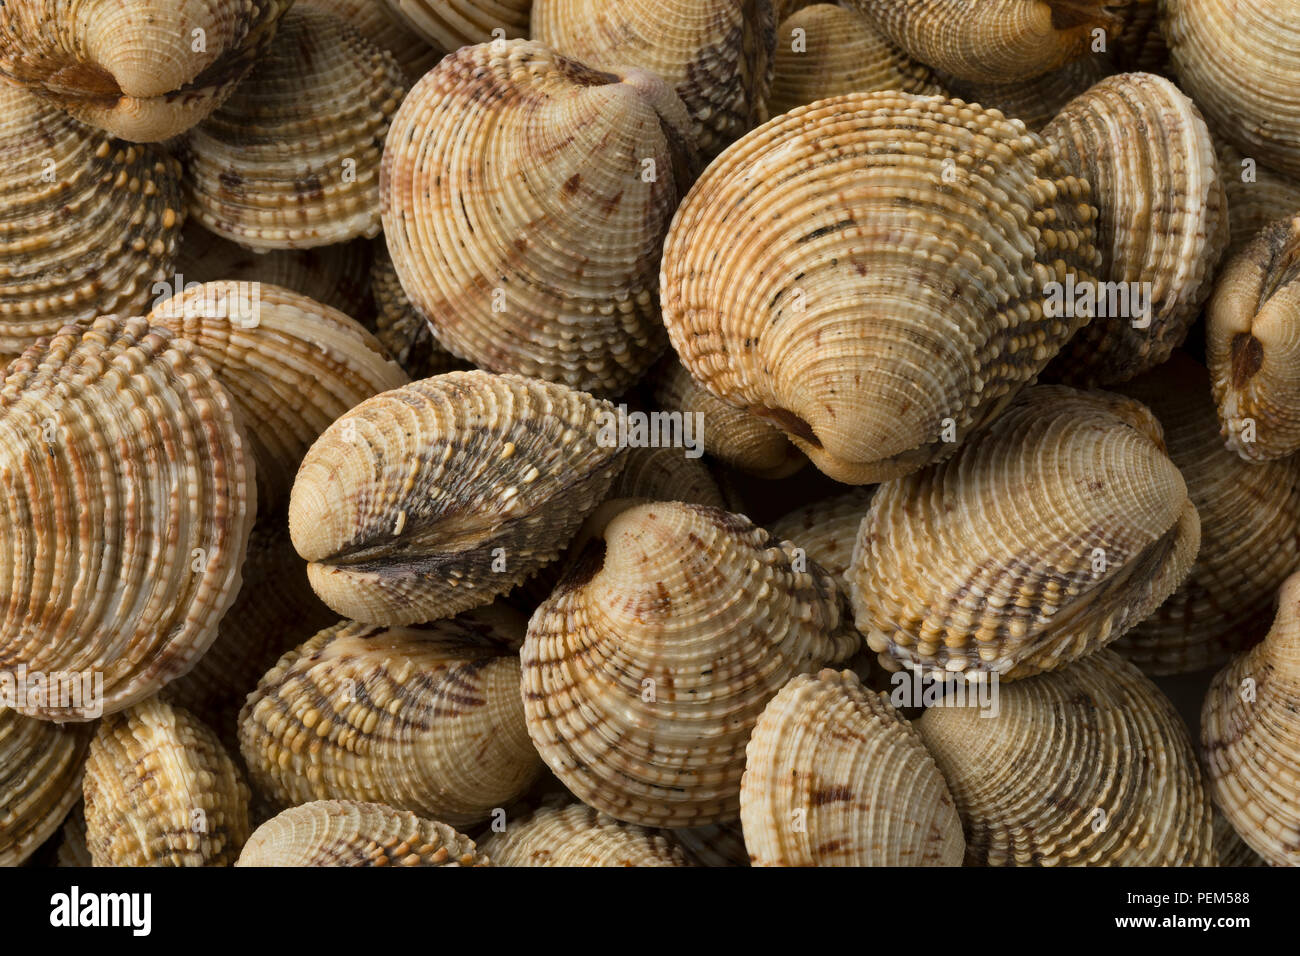 Fresh raw warty venus clams close up full frame - Stock Image